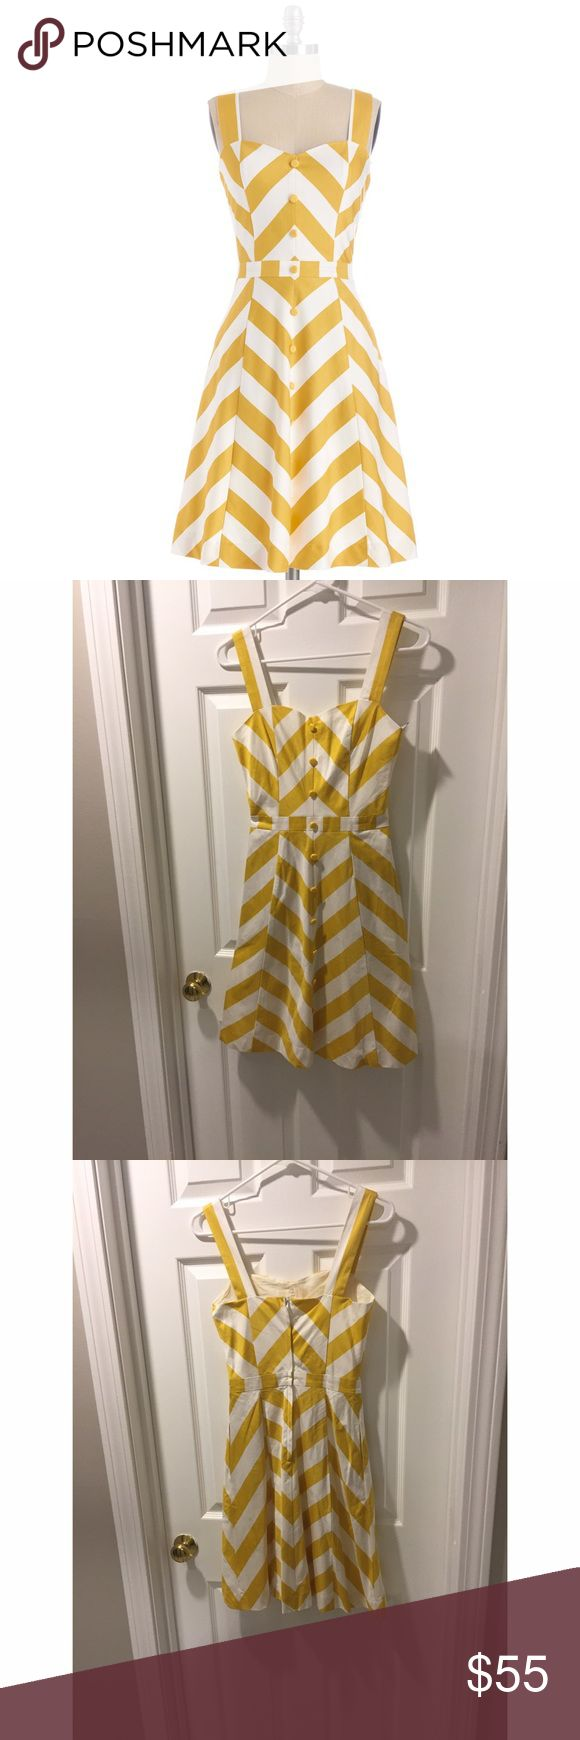 """Modcloth bea and dot retro chevron print dress Brand bea and dot for modcloth """"atta twirl"""" retro dress. Features decorative buttons down the front and it has pockets! Zips in back. In excellent condition, like new. Tag reads size 2. ModCloth Dresses"""